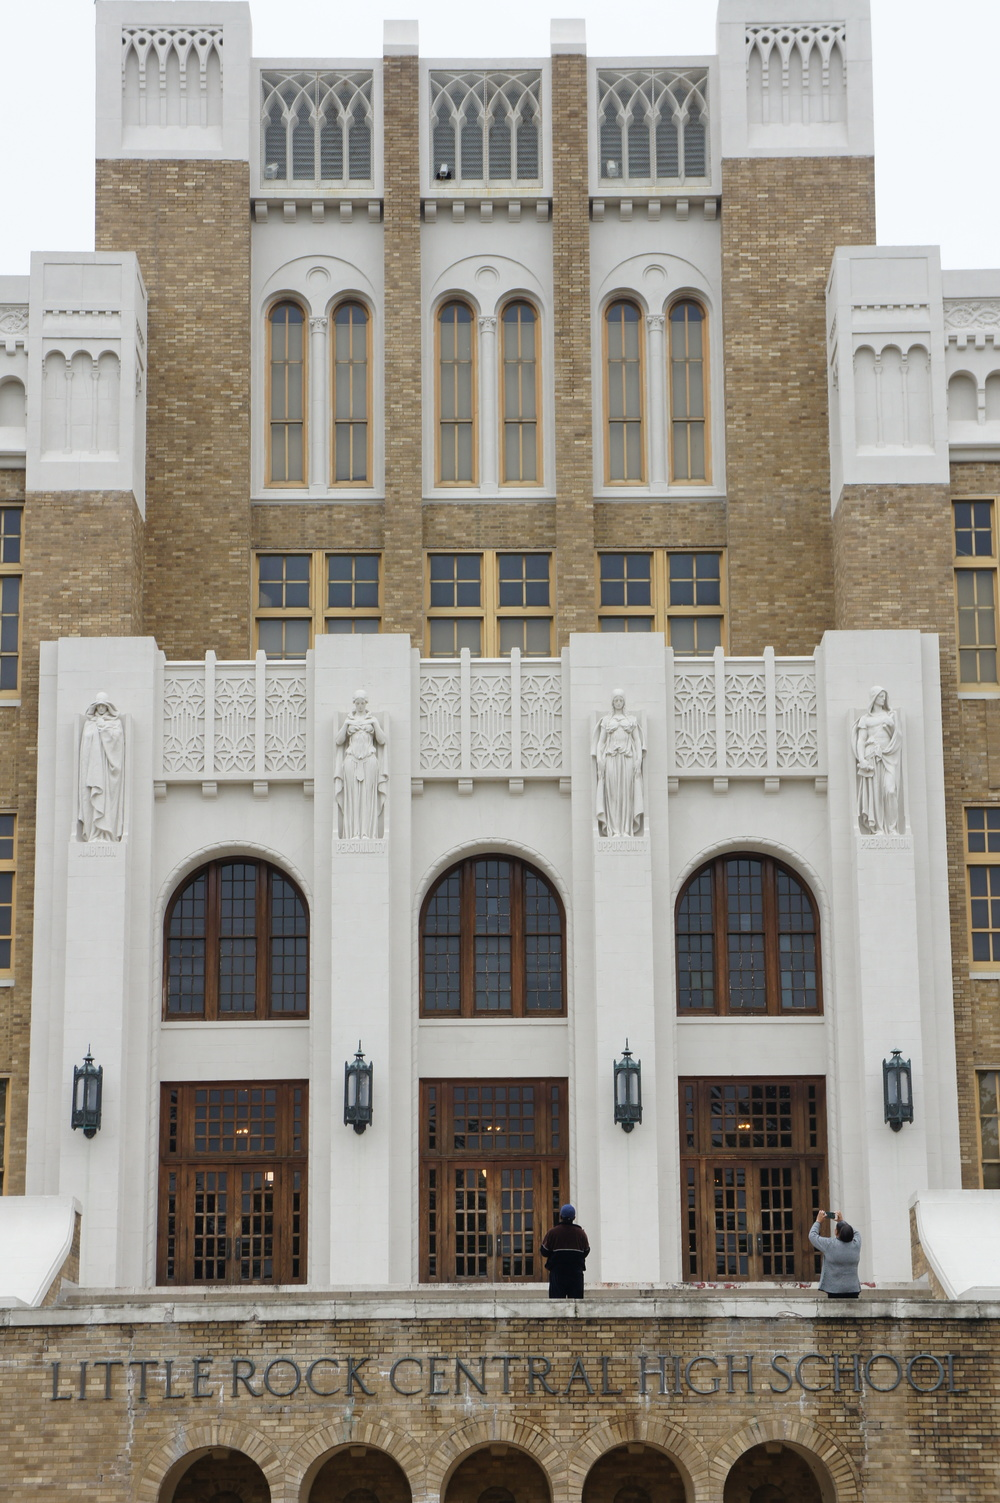 Central High School - site of the first integrated high school.